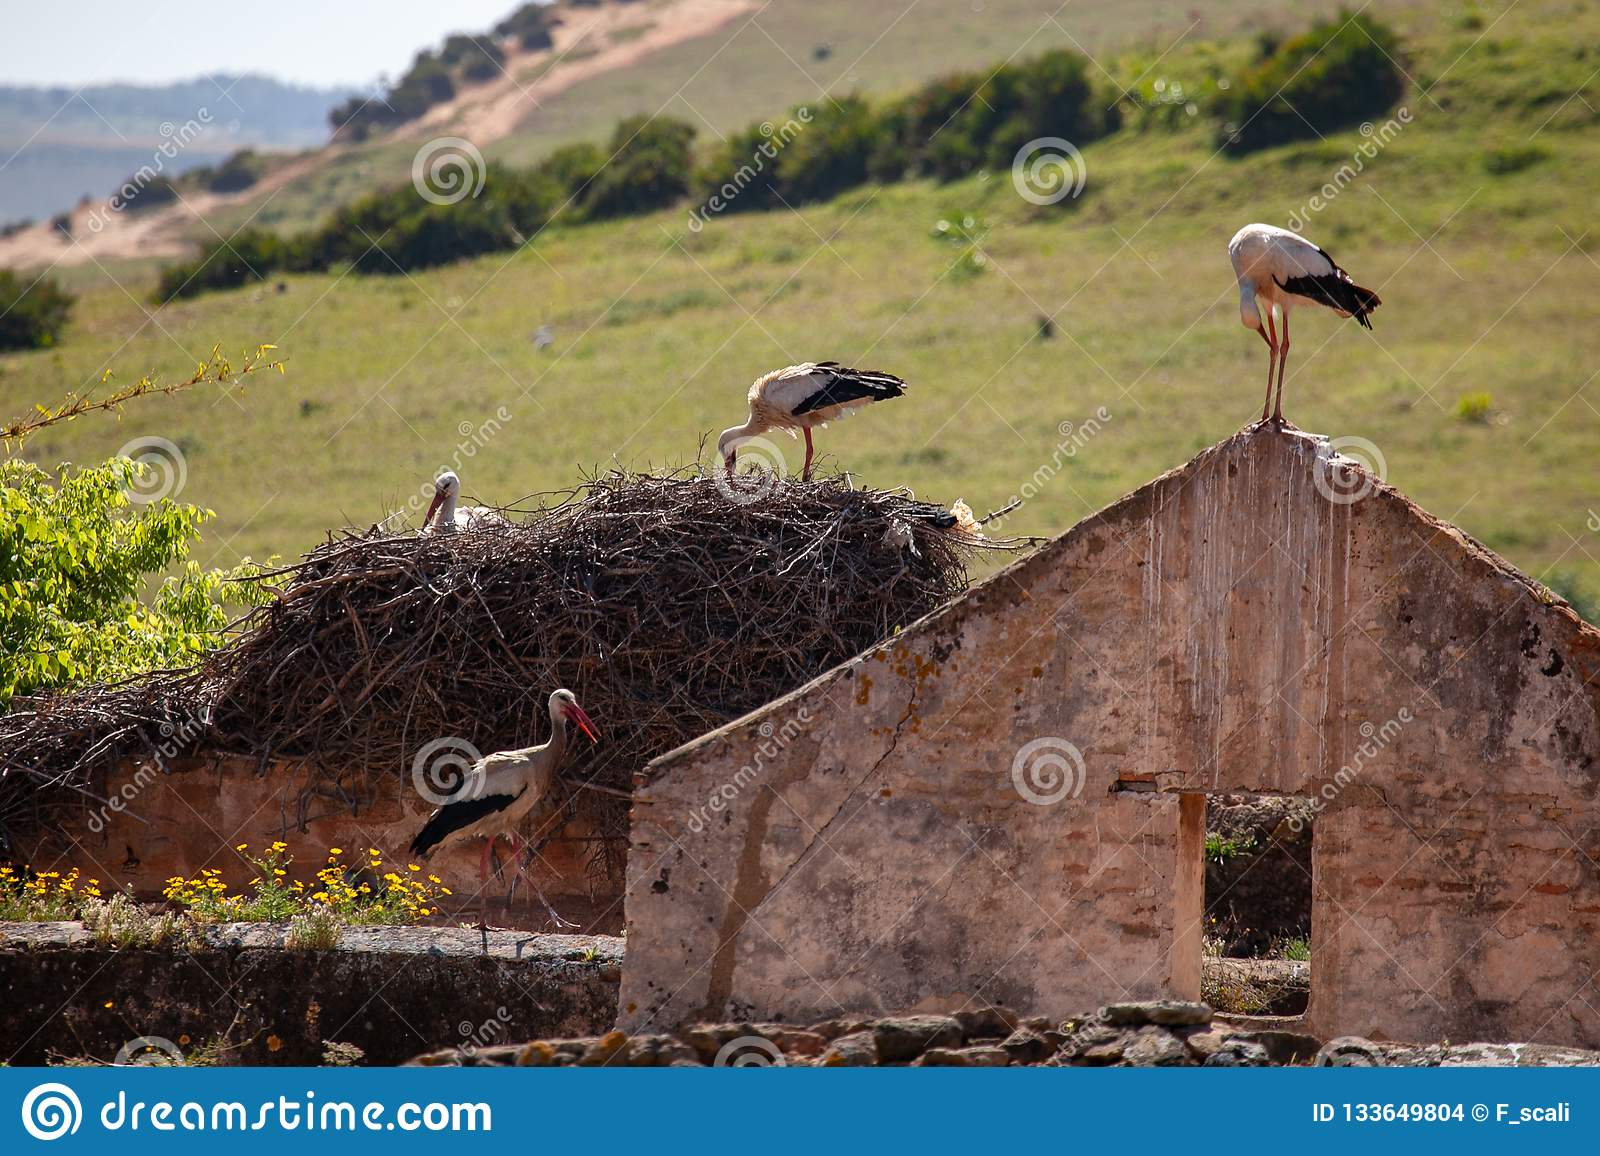 Storks nesting on ruined house in Morocco